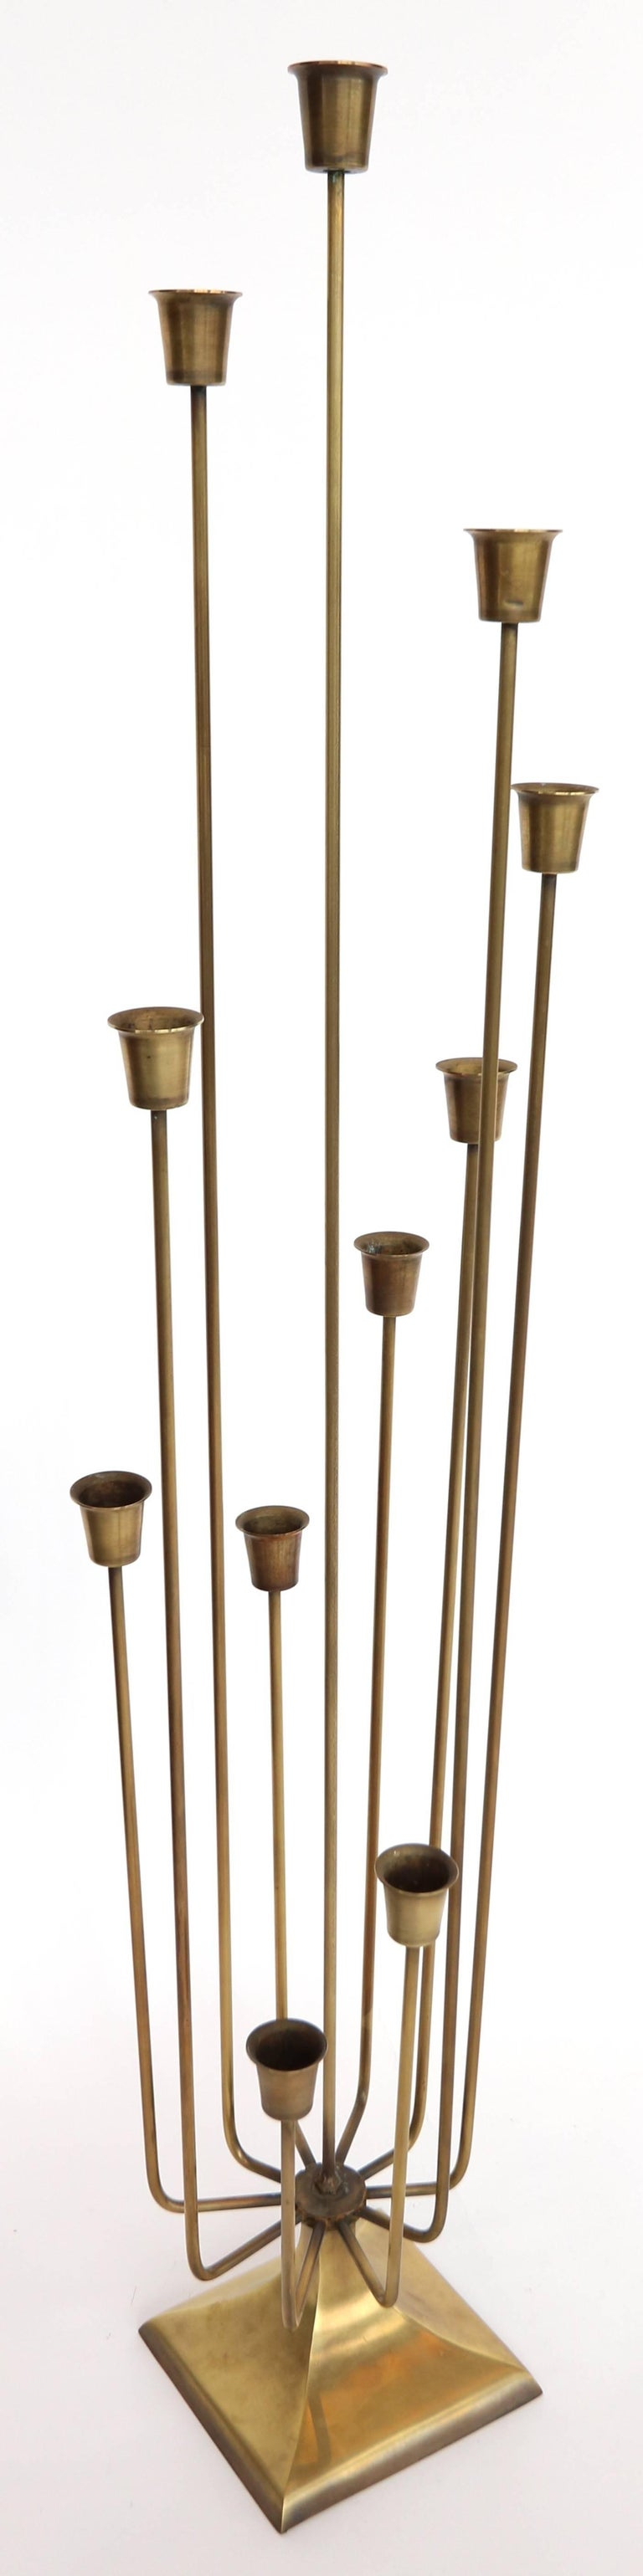 Pair of 1970s brass candleholders with 11 cups.